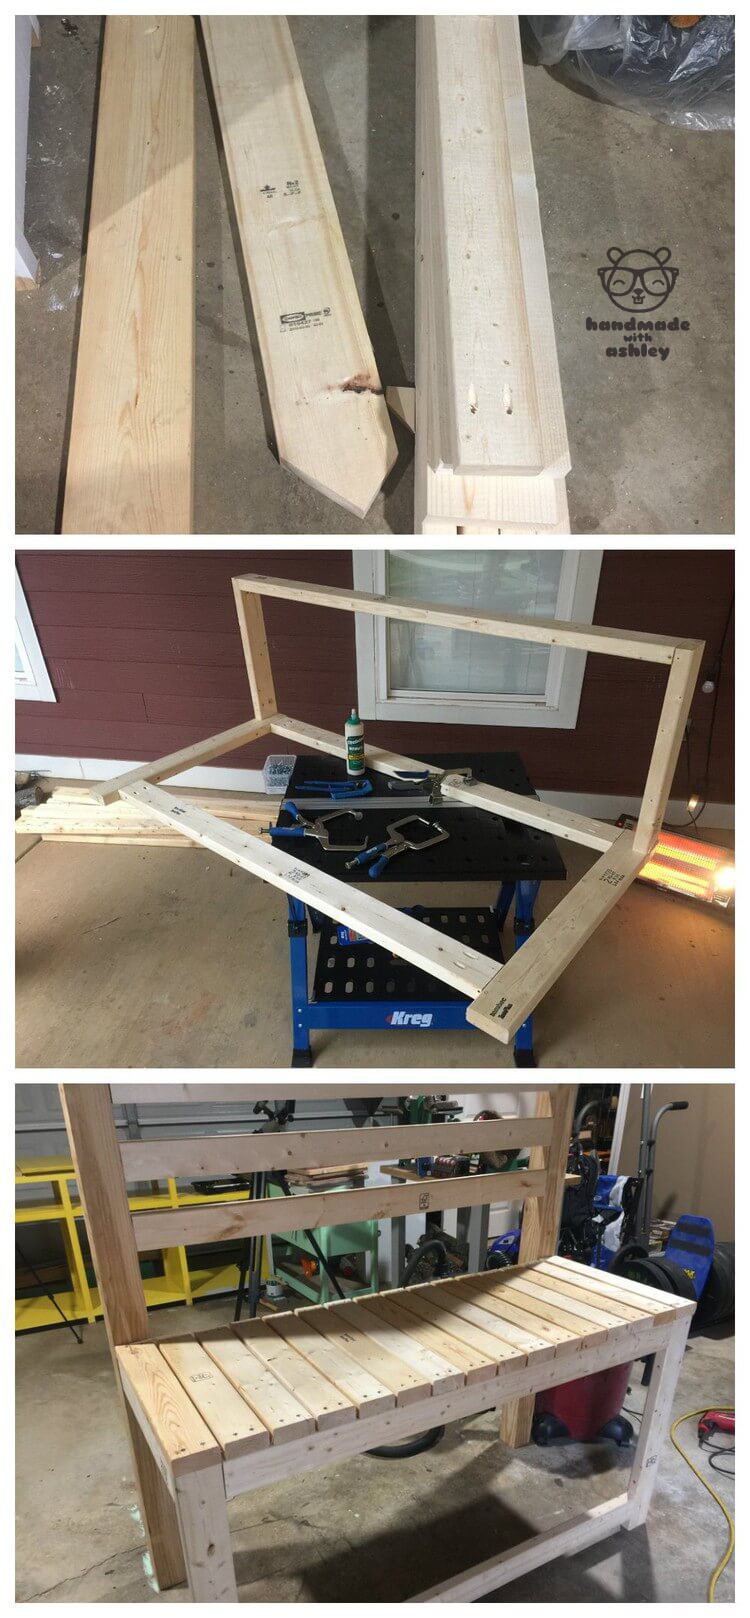 Building the junior loft bed with a mixture of pocket hole joinery with the Kreg Jig and knockdown hardware with the bed rail brackets.